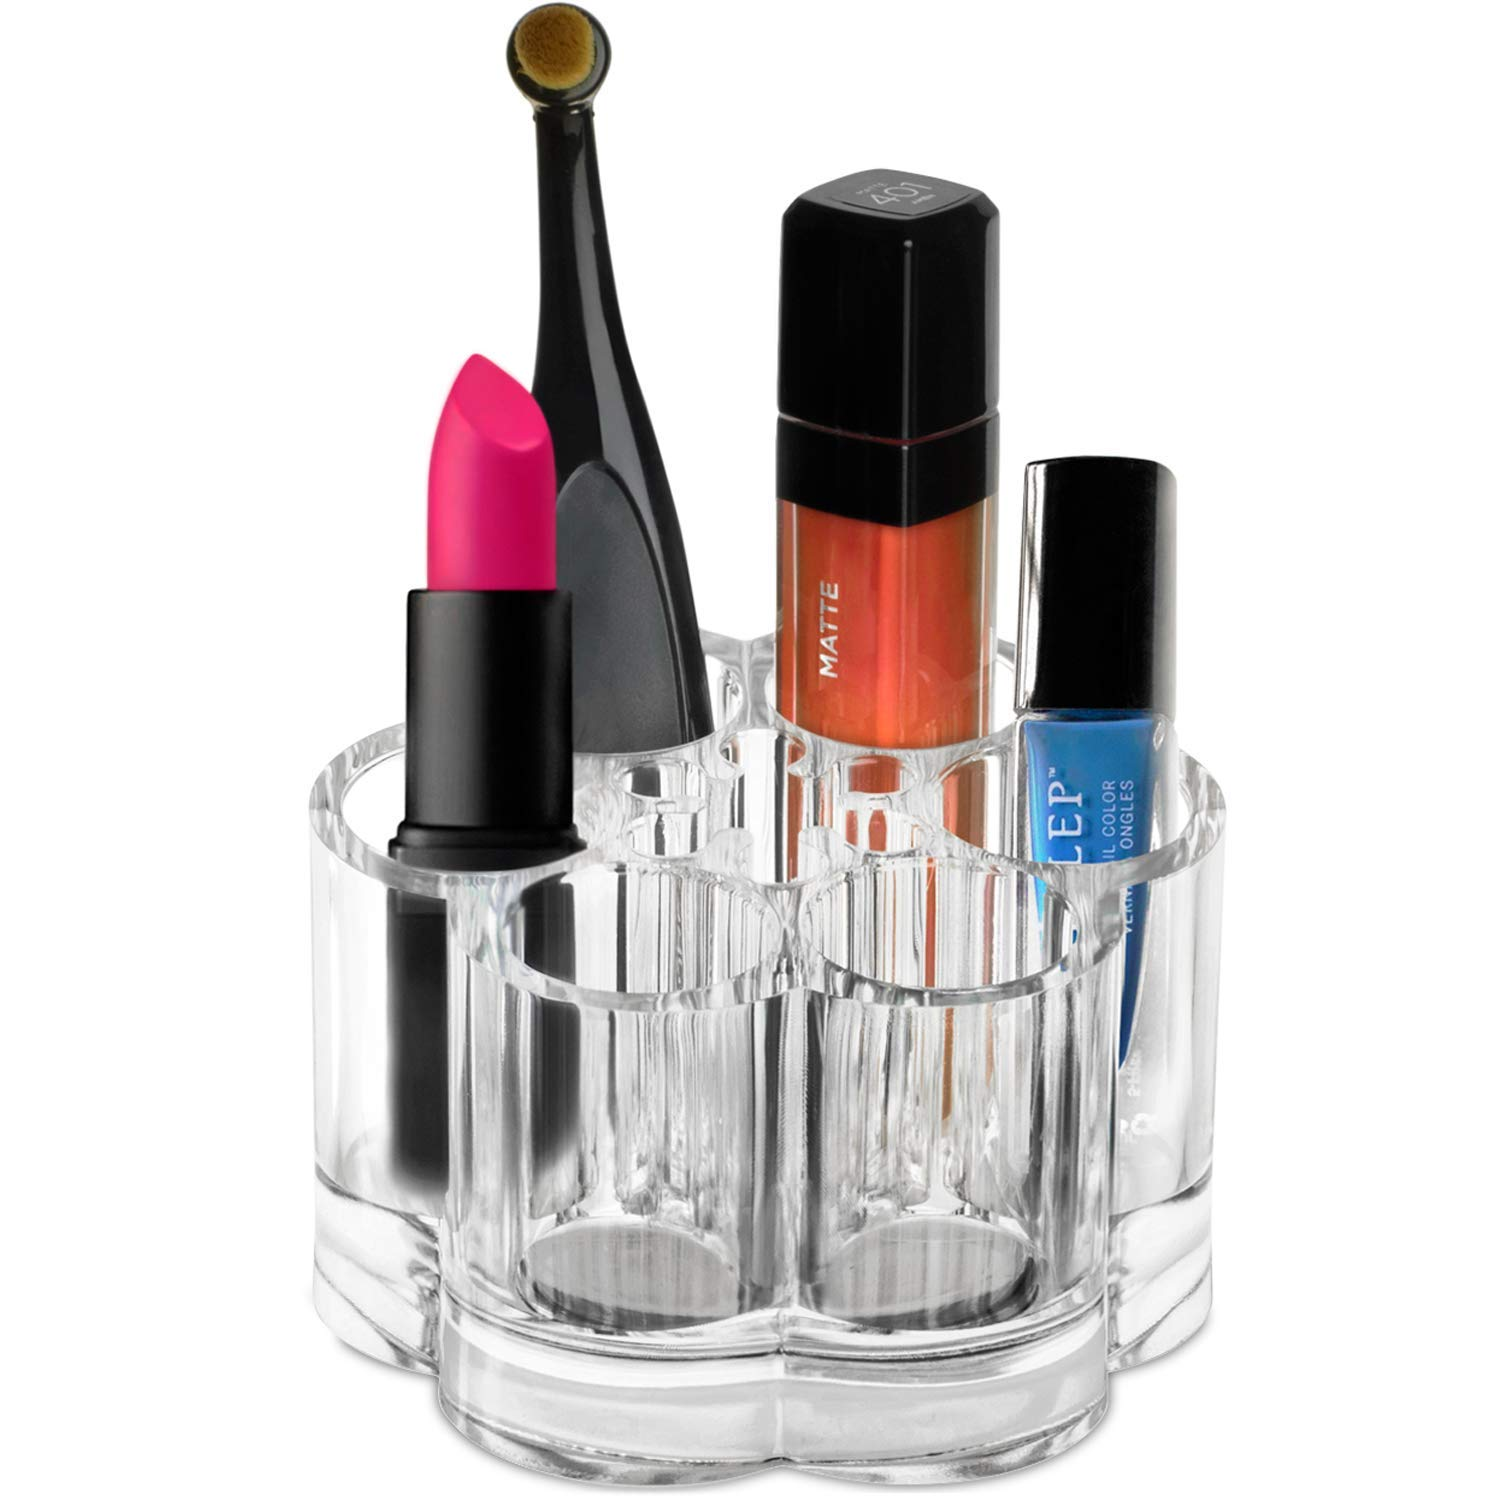 Flower Design Makeup Storage Organizer - Acrylic Clear Lipstick Countertop Holder With 7 Individual Slot Organizers For Brushes Nail Polish Essential Oils Eyeshadow Pens Ideal For Use - Best Gift Idea